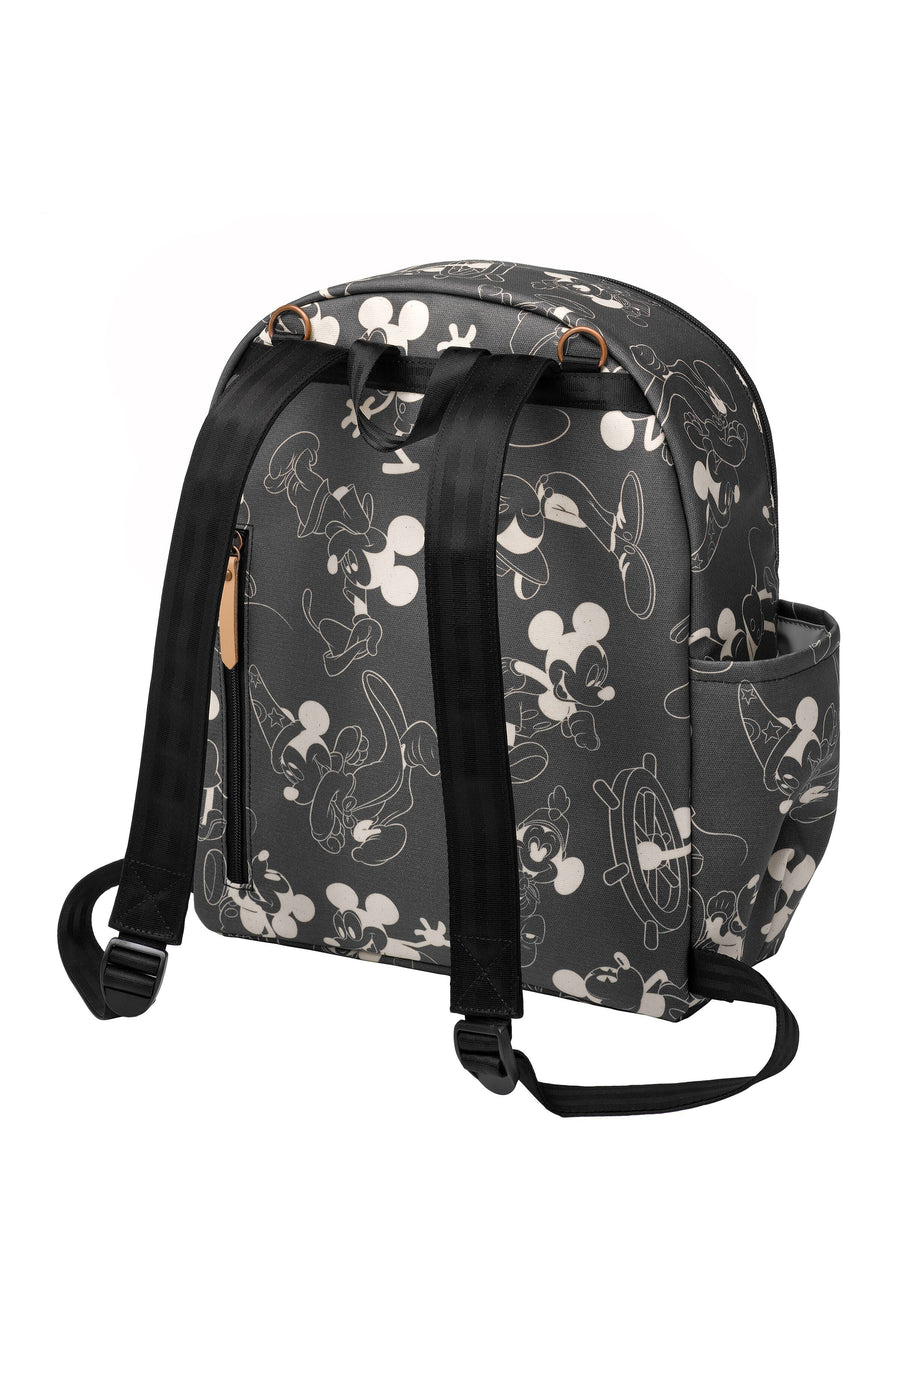 ACE BACKPACK IN MICKEY MOUSE | Petunia Pickle Bottom